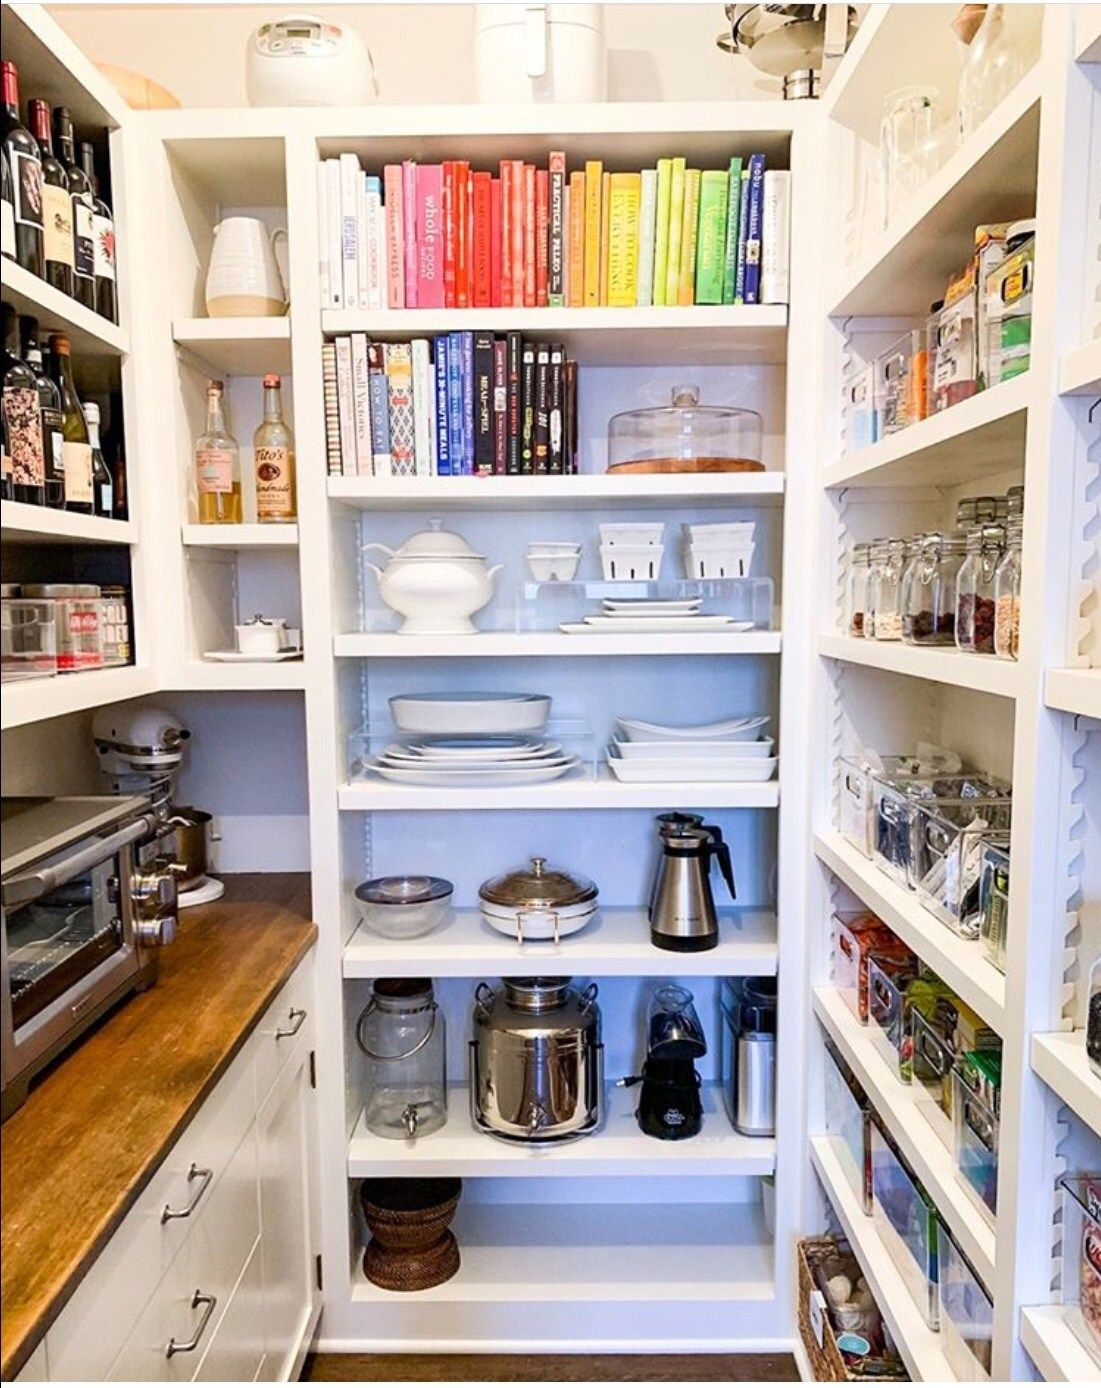 20+ Clever Pantry Organization Ideas #pantryorganizationideas